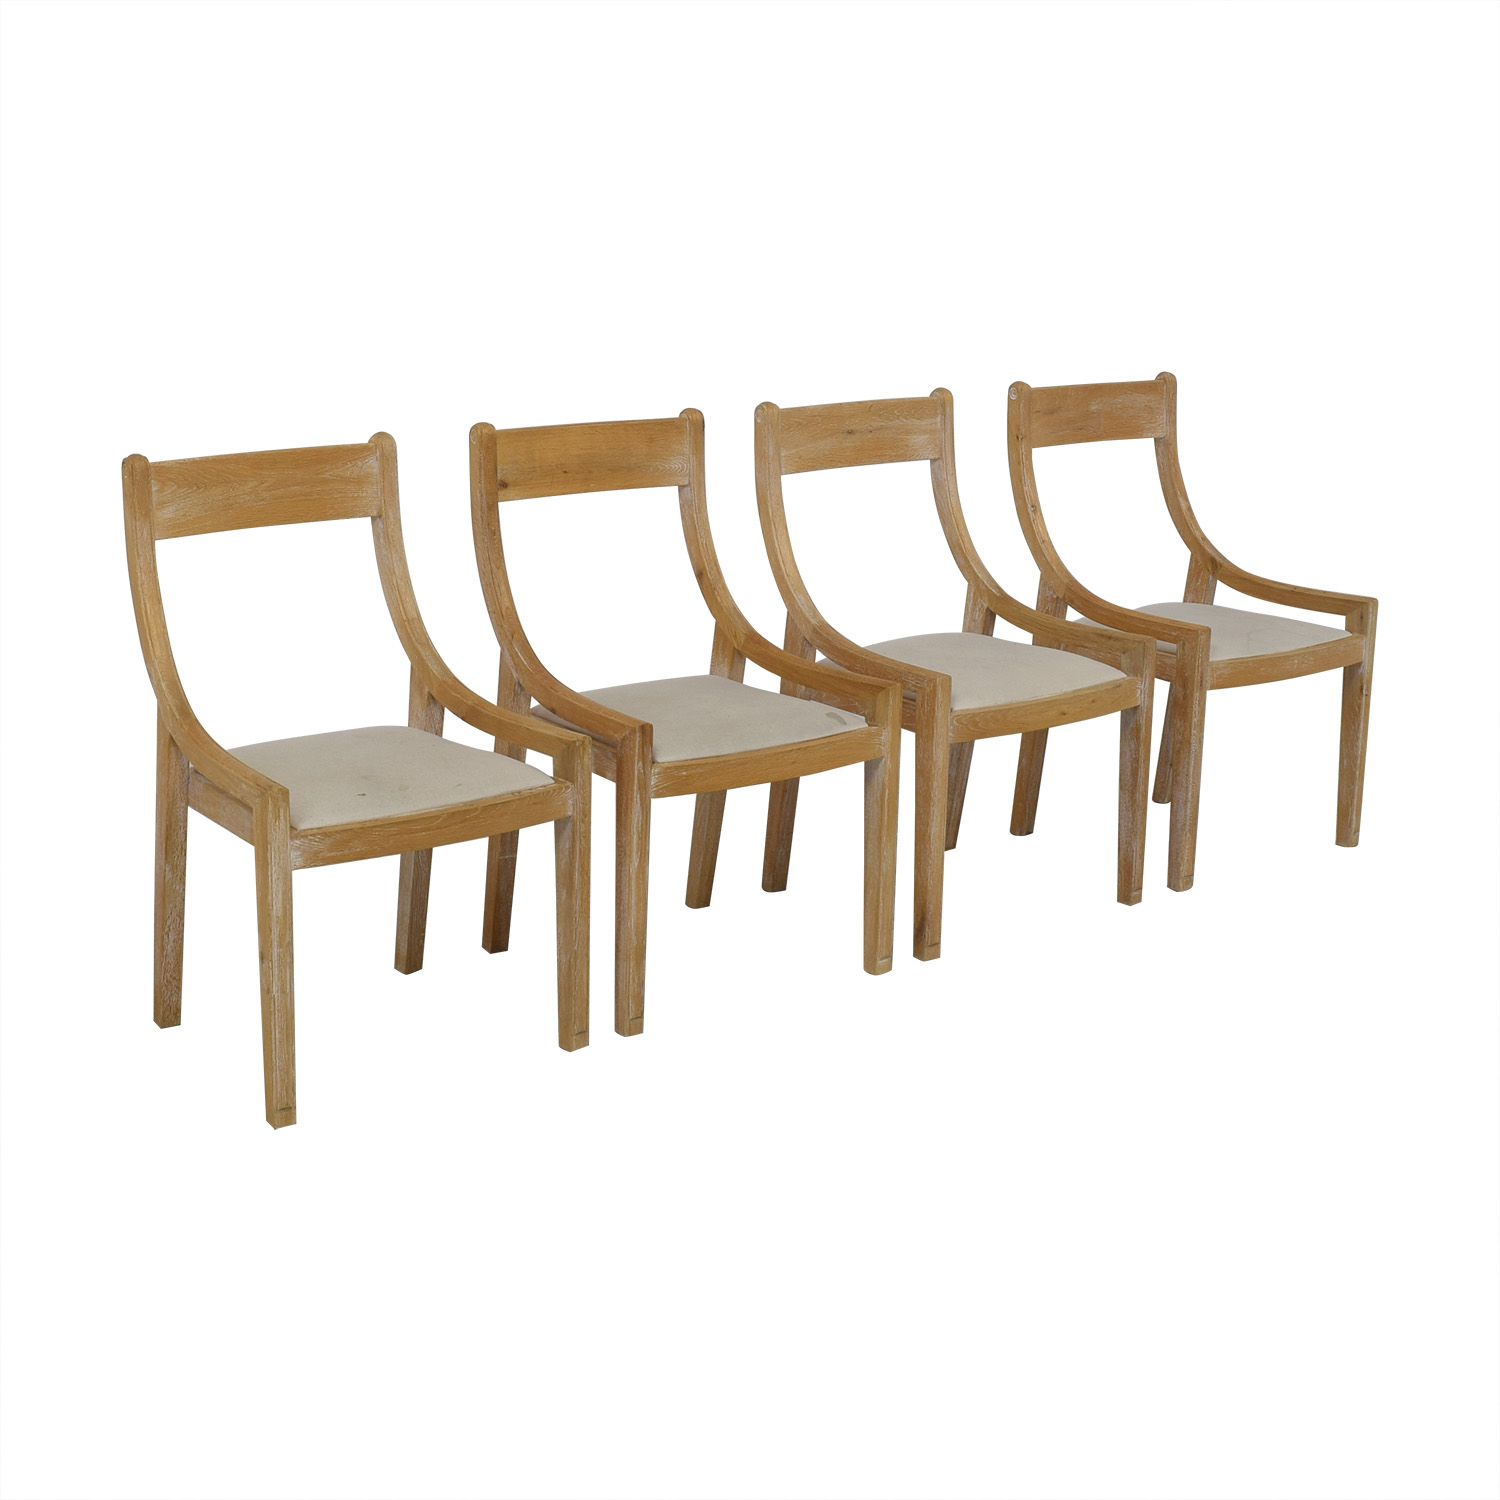 Birch Lane Birch Lane Solid Wood Dining Chairs tan & beige